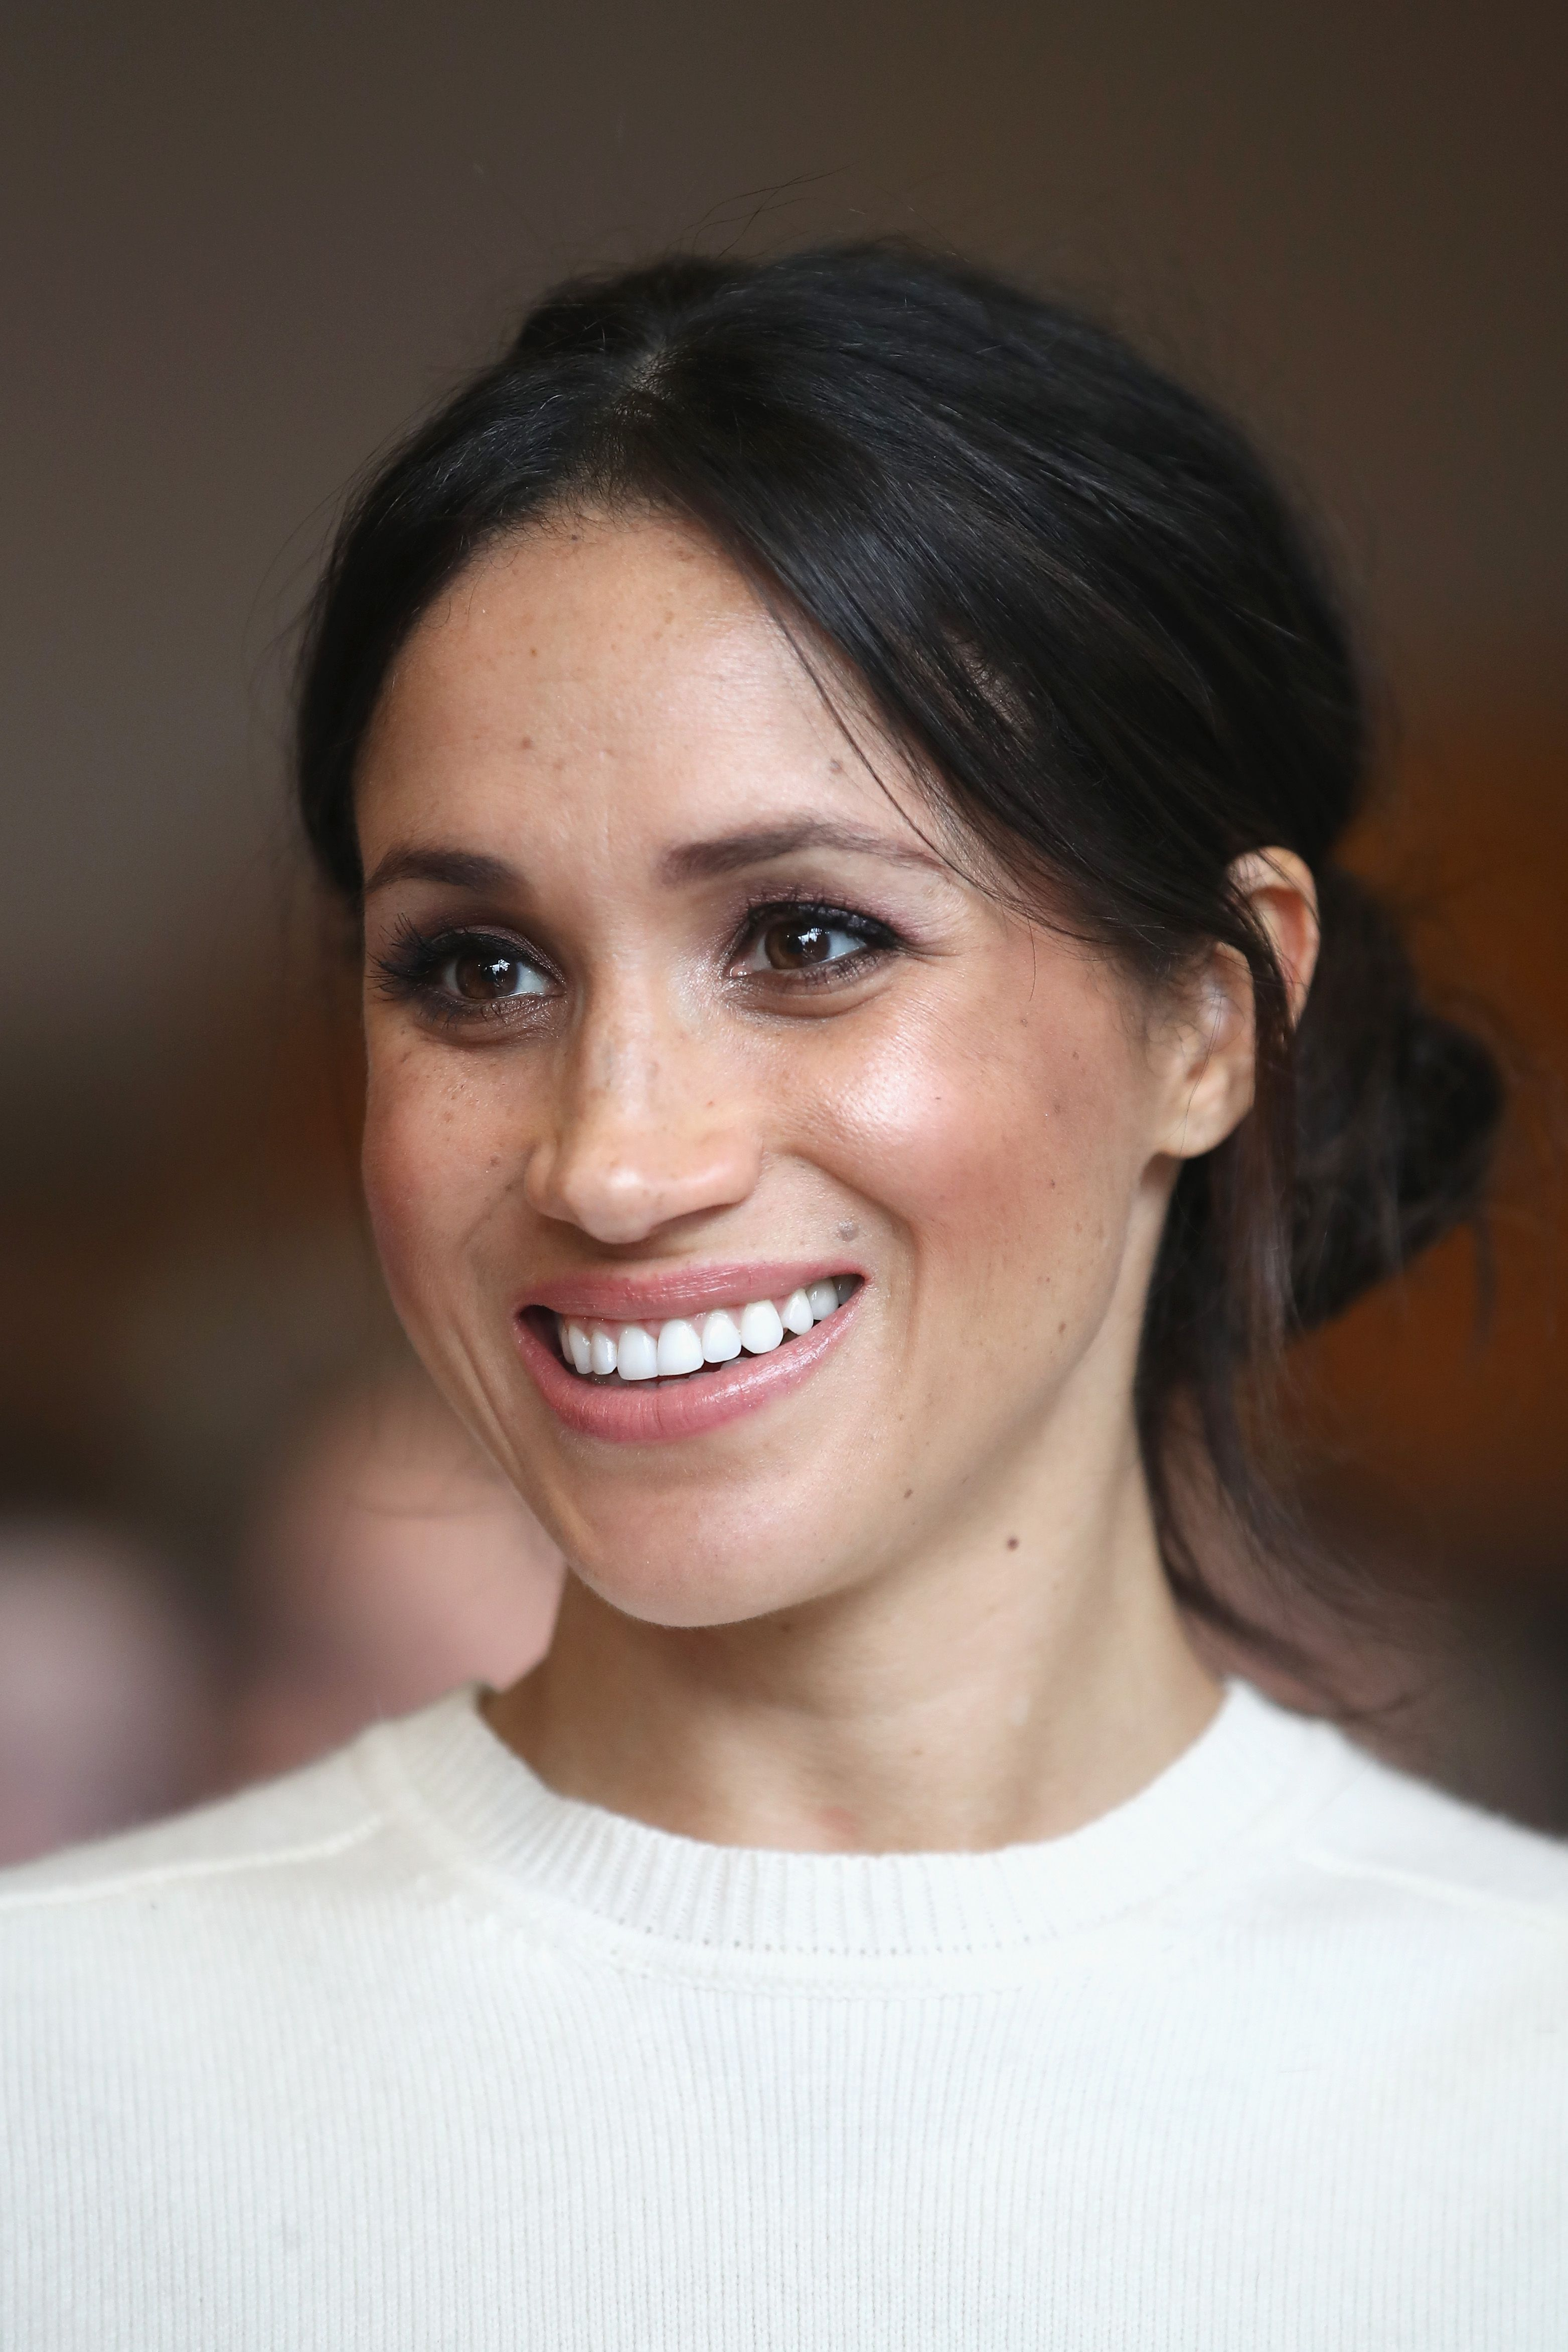 Everything You Need to Know About Meghan Markles Family Ahead of the Royal Wedding